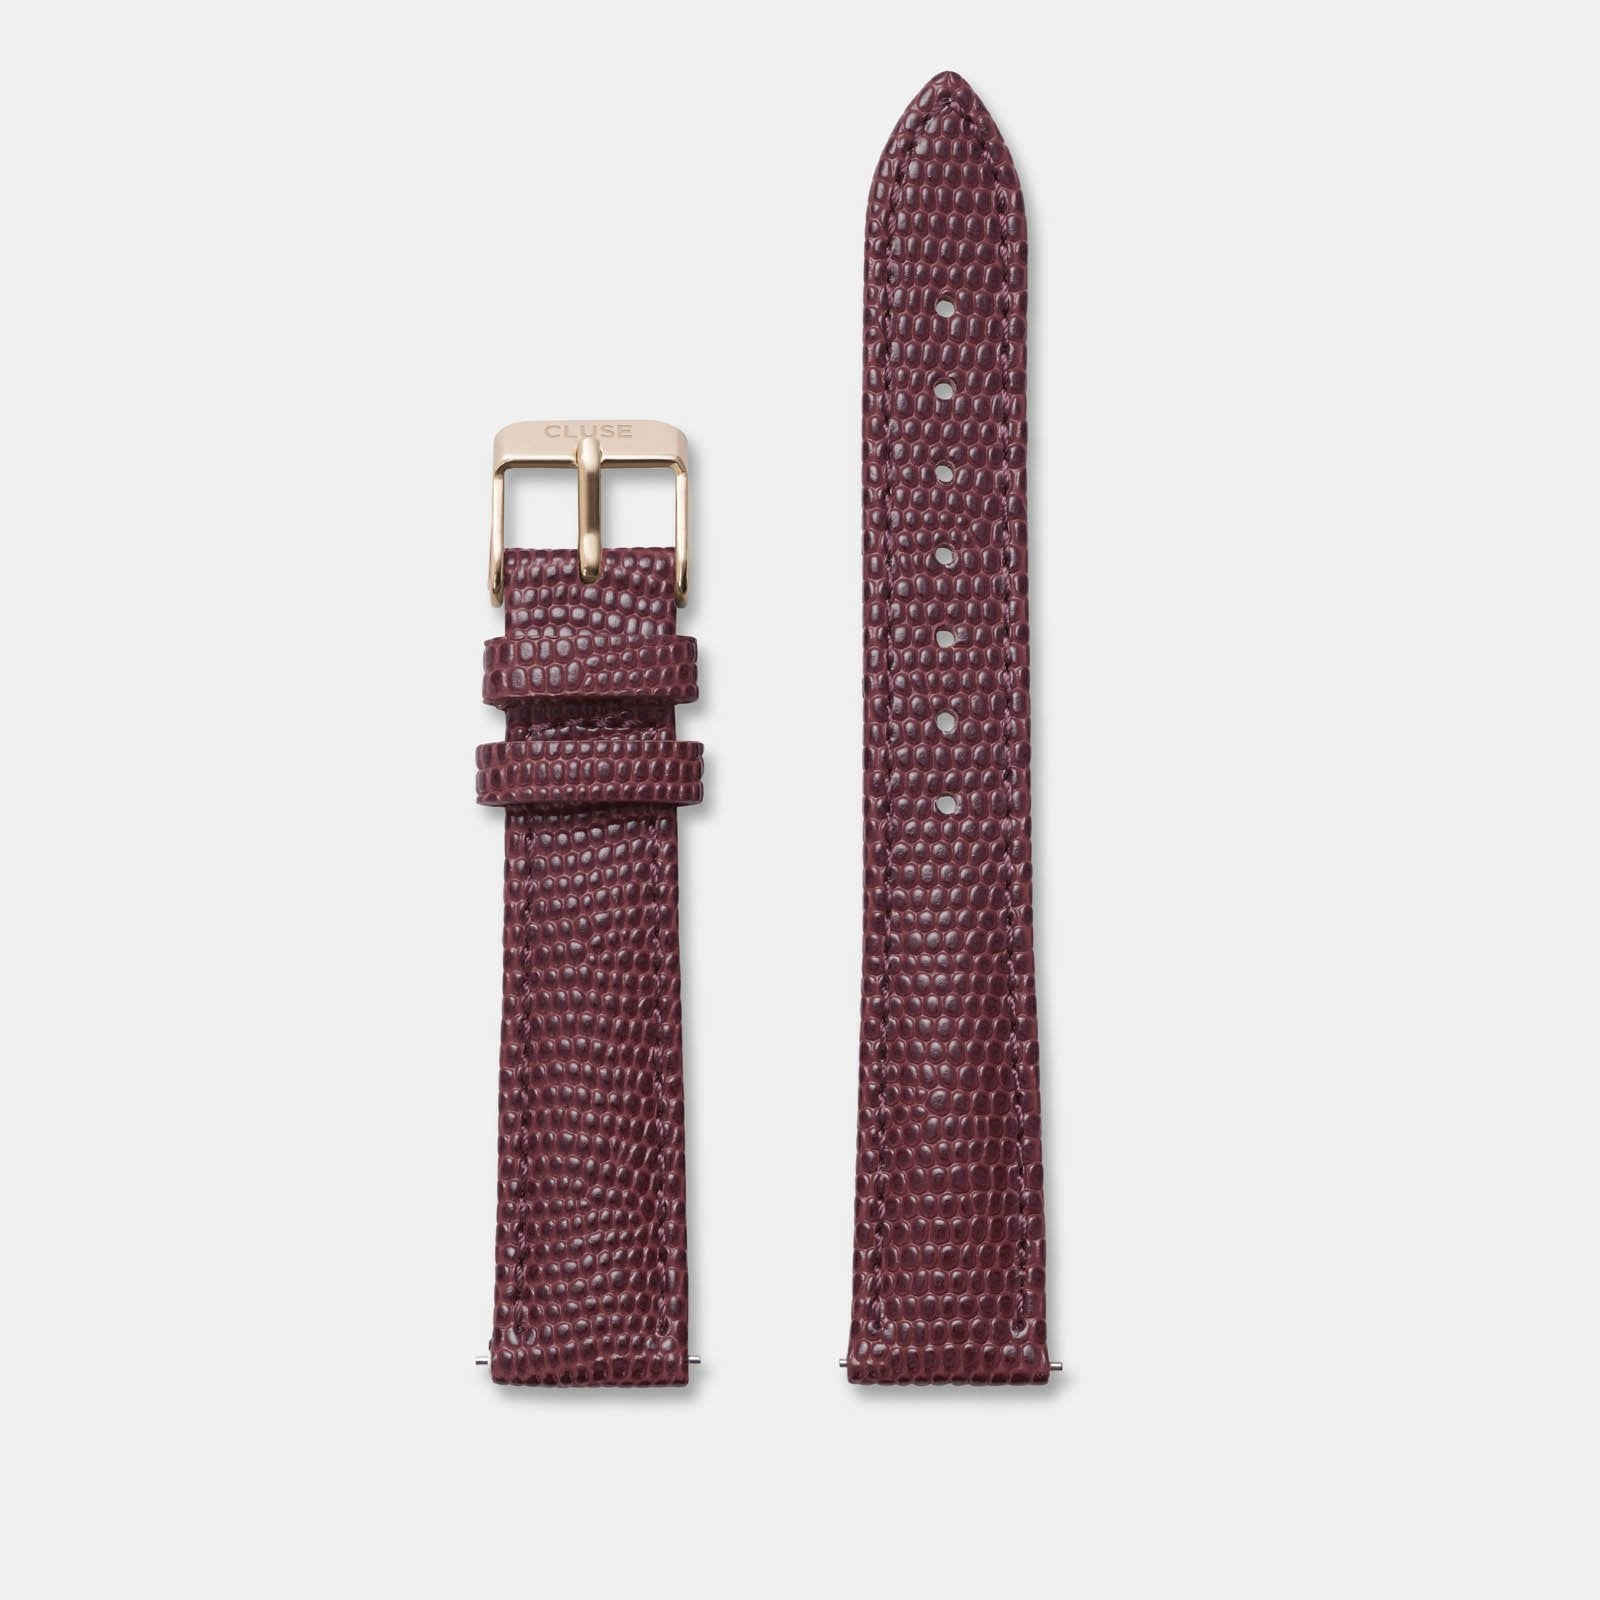 CLUSE 16 mm Strap Burgundy Lizard/Rose Gold CLS380 - Cinturino